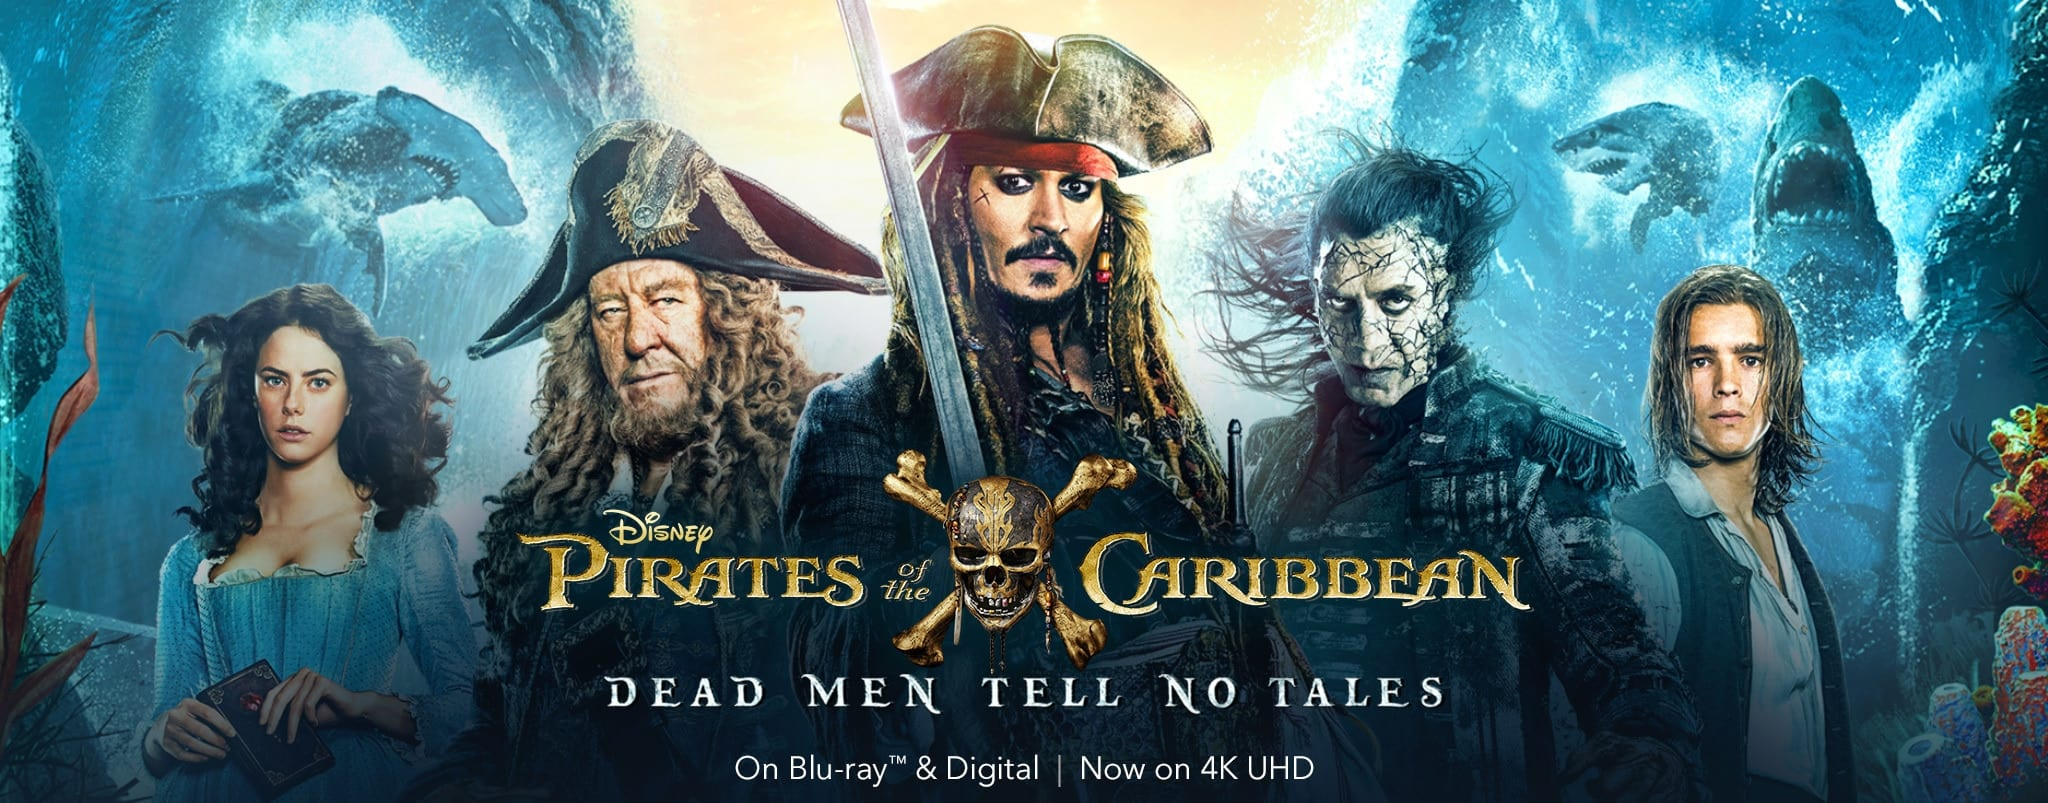 Pirates of the Caribbean: Dead Men Tell No Tales Poster [Source: Disney Pirates of the Caribbean]